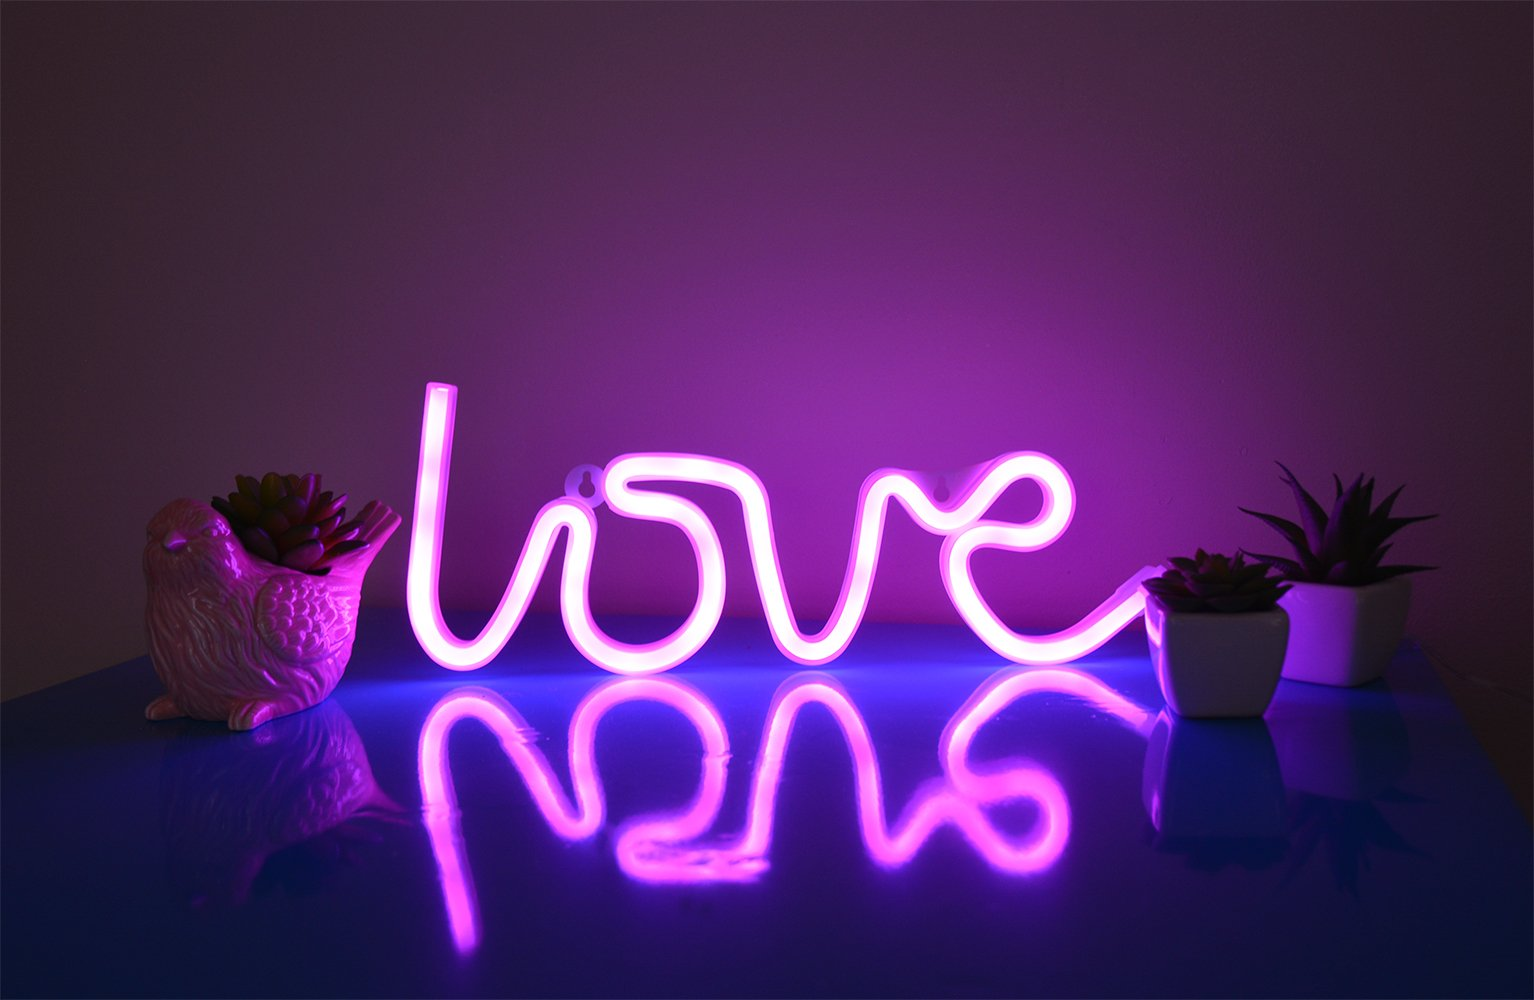 ''All you need is Love'' Neon Love Sign LED Light, Love Shaped, Decor Light, Wall Decor for Bedroom, Birthday Party, Living Room, Wedding Party Decoration, Battery Operated - Pink Neon by The Nifty Nook